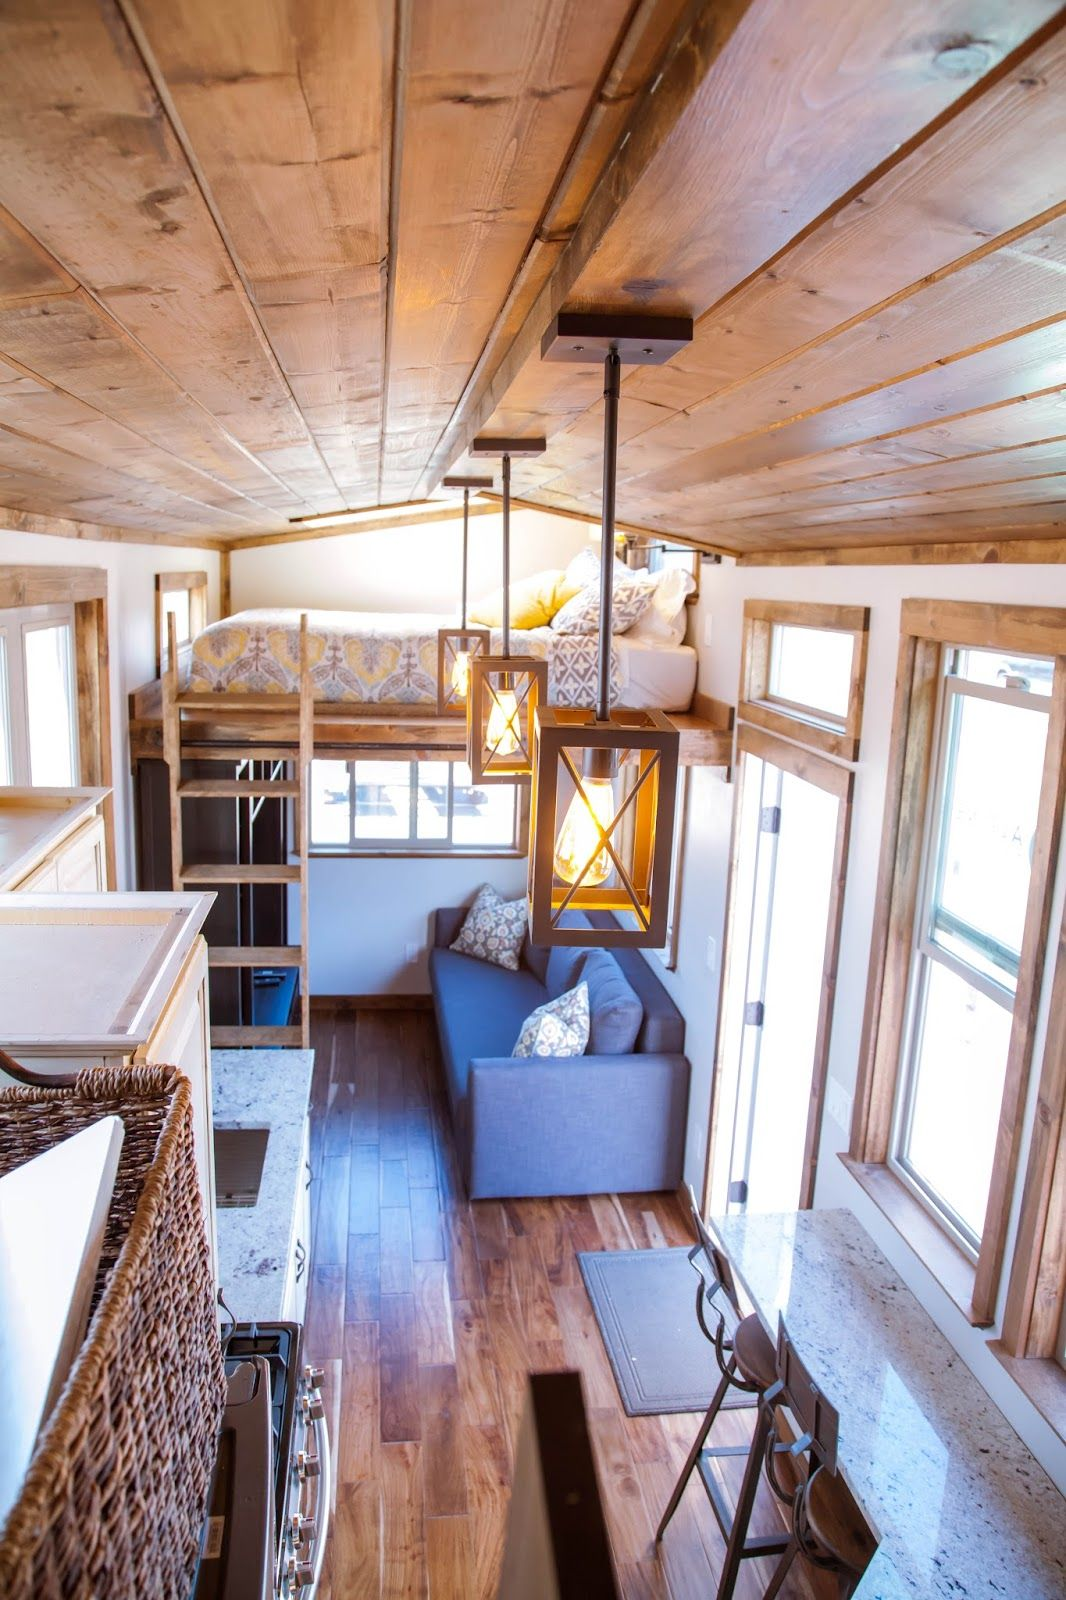 The Teton From Alpine Tiny Homes, A Stunning Tiny House On Wheels.